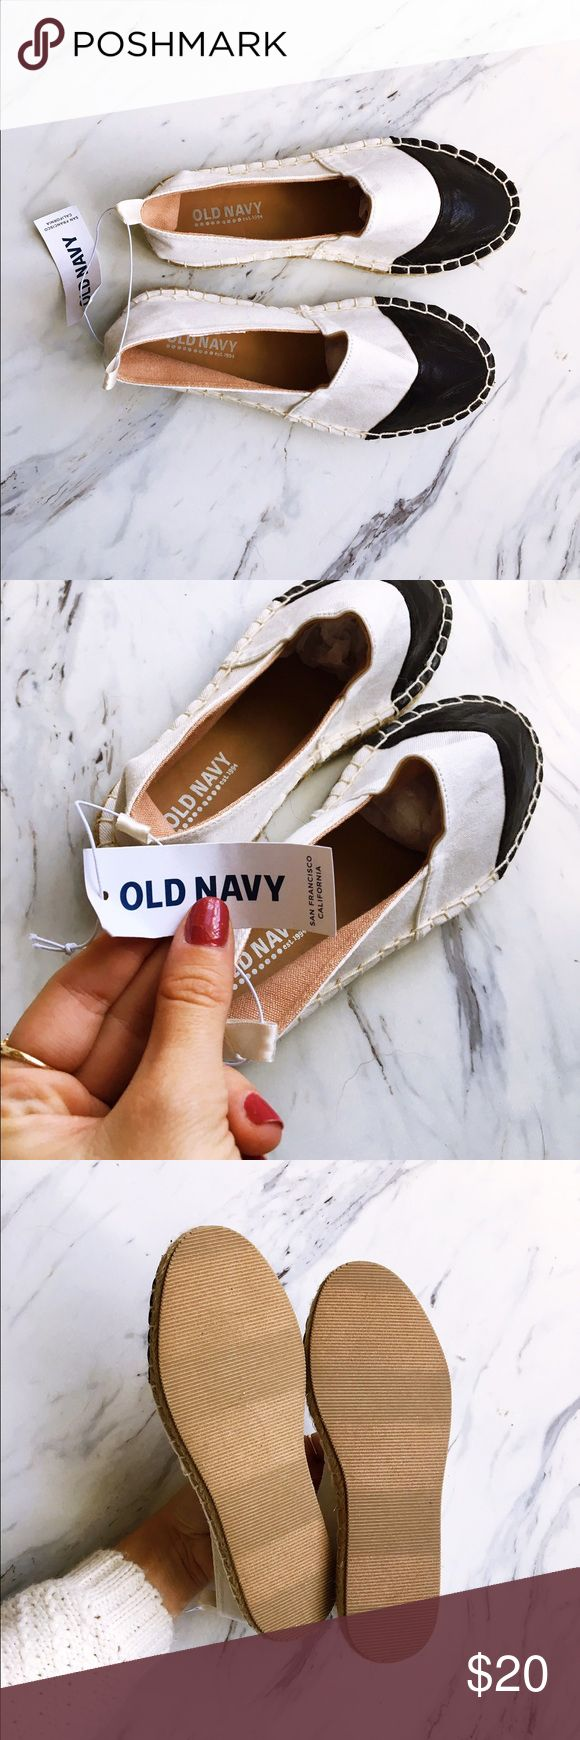 Kids Old Navy Black and White Espadrilles Perfect condition, never worn, NWT + interior tissue stuffing. Perfect for slippin on your kiddo for Fall! Price isn't firm, make an offer! Old Navy Shoes Slippers